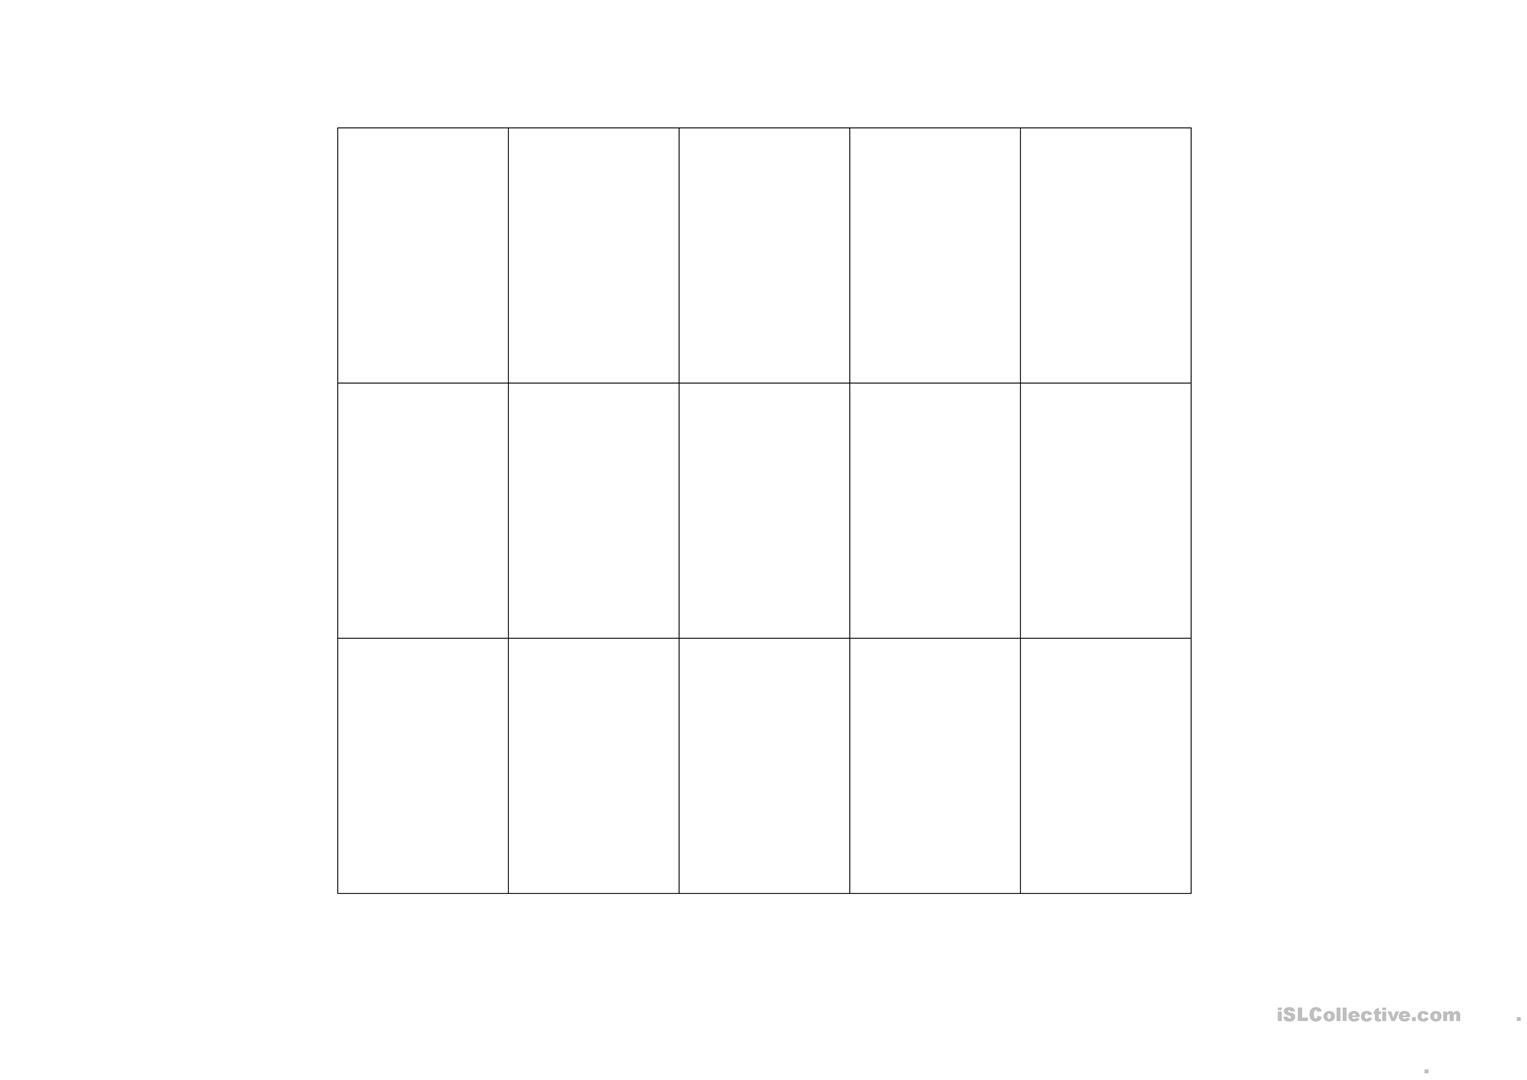 Spatial Relations Dictation Activity Worksheet